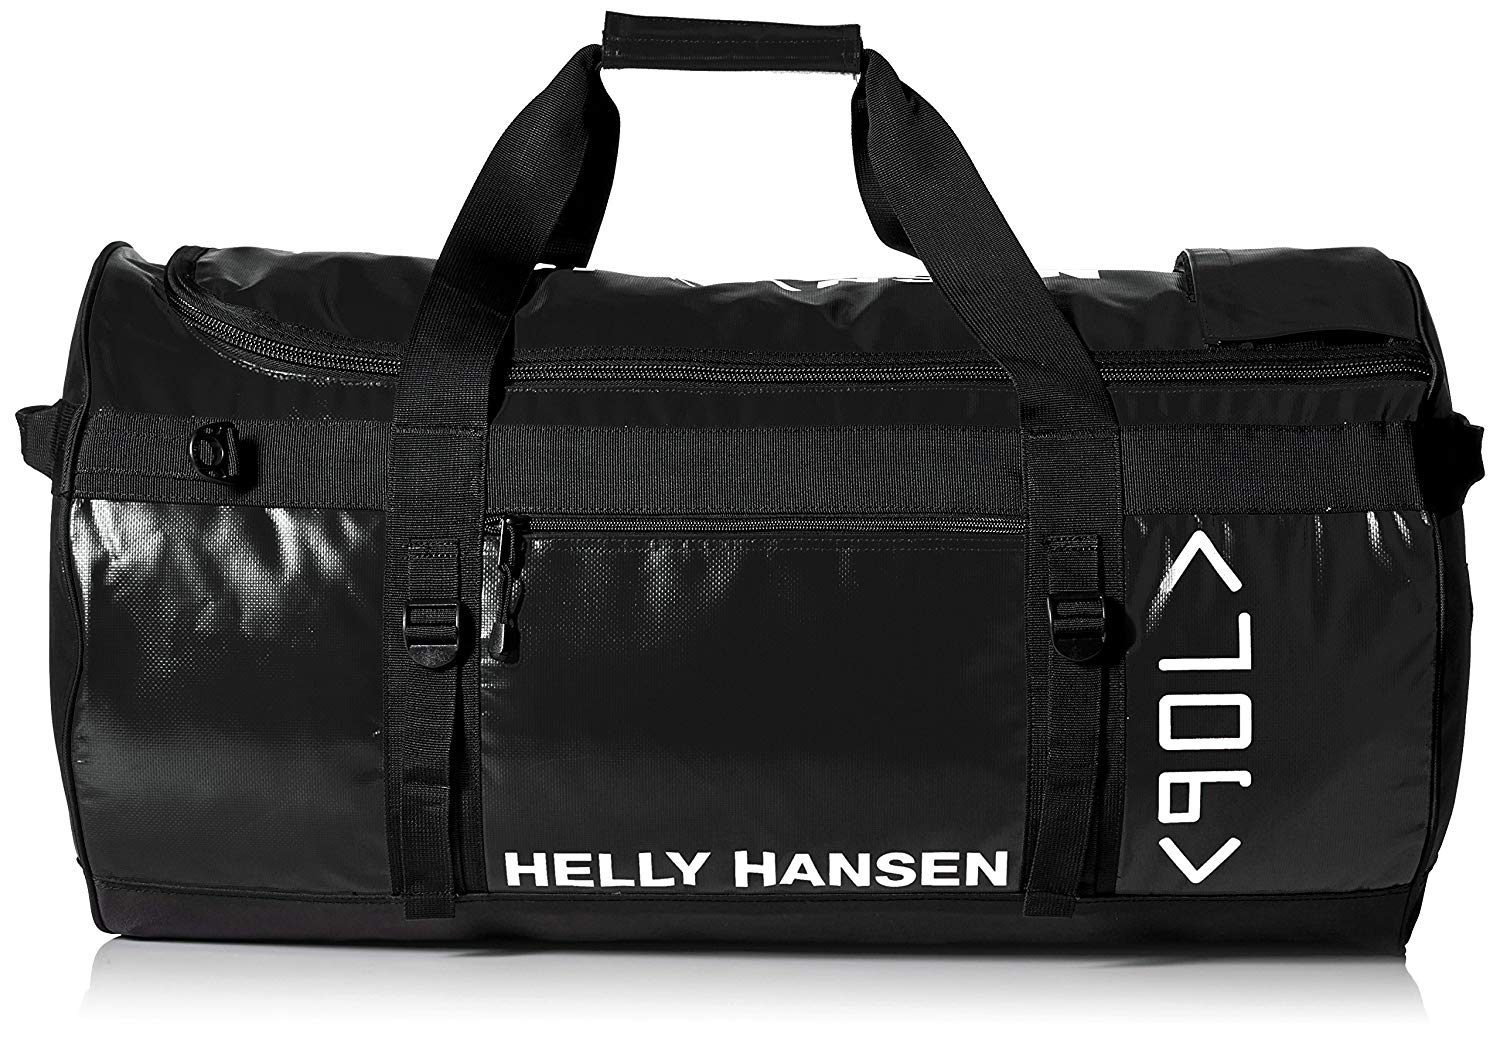 f721ab4bbe Get Quotations · Helly Hansen Classic Duffel Bag with Backpack Straps